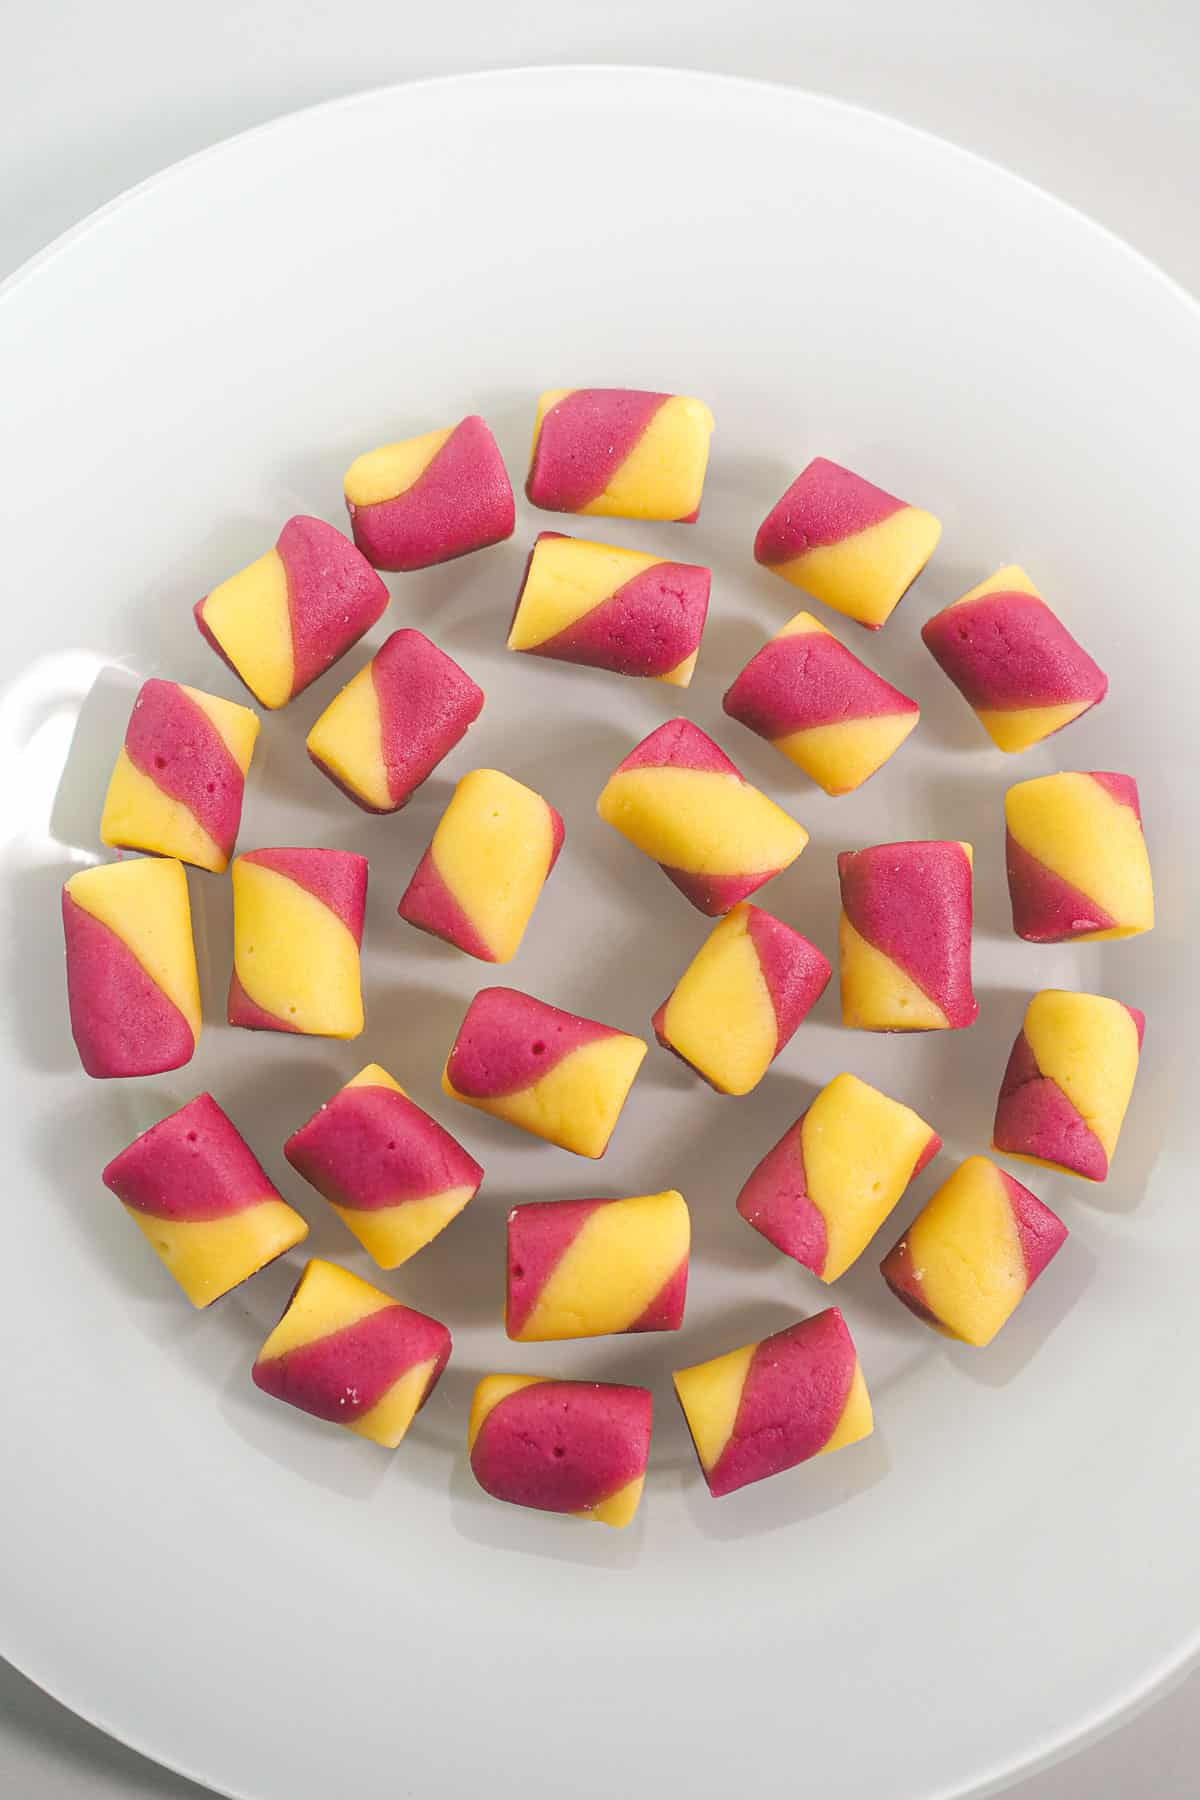 Pink and yellow butter mint candy arranged in a circular motion on a white plate